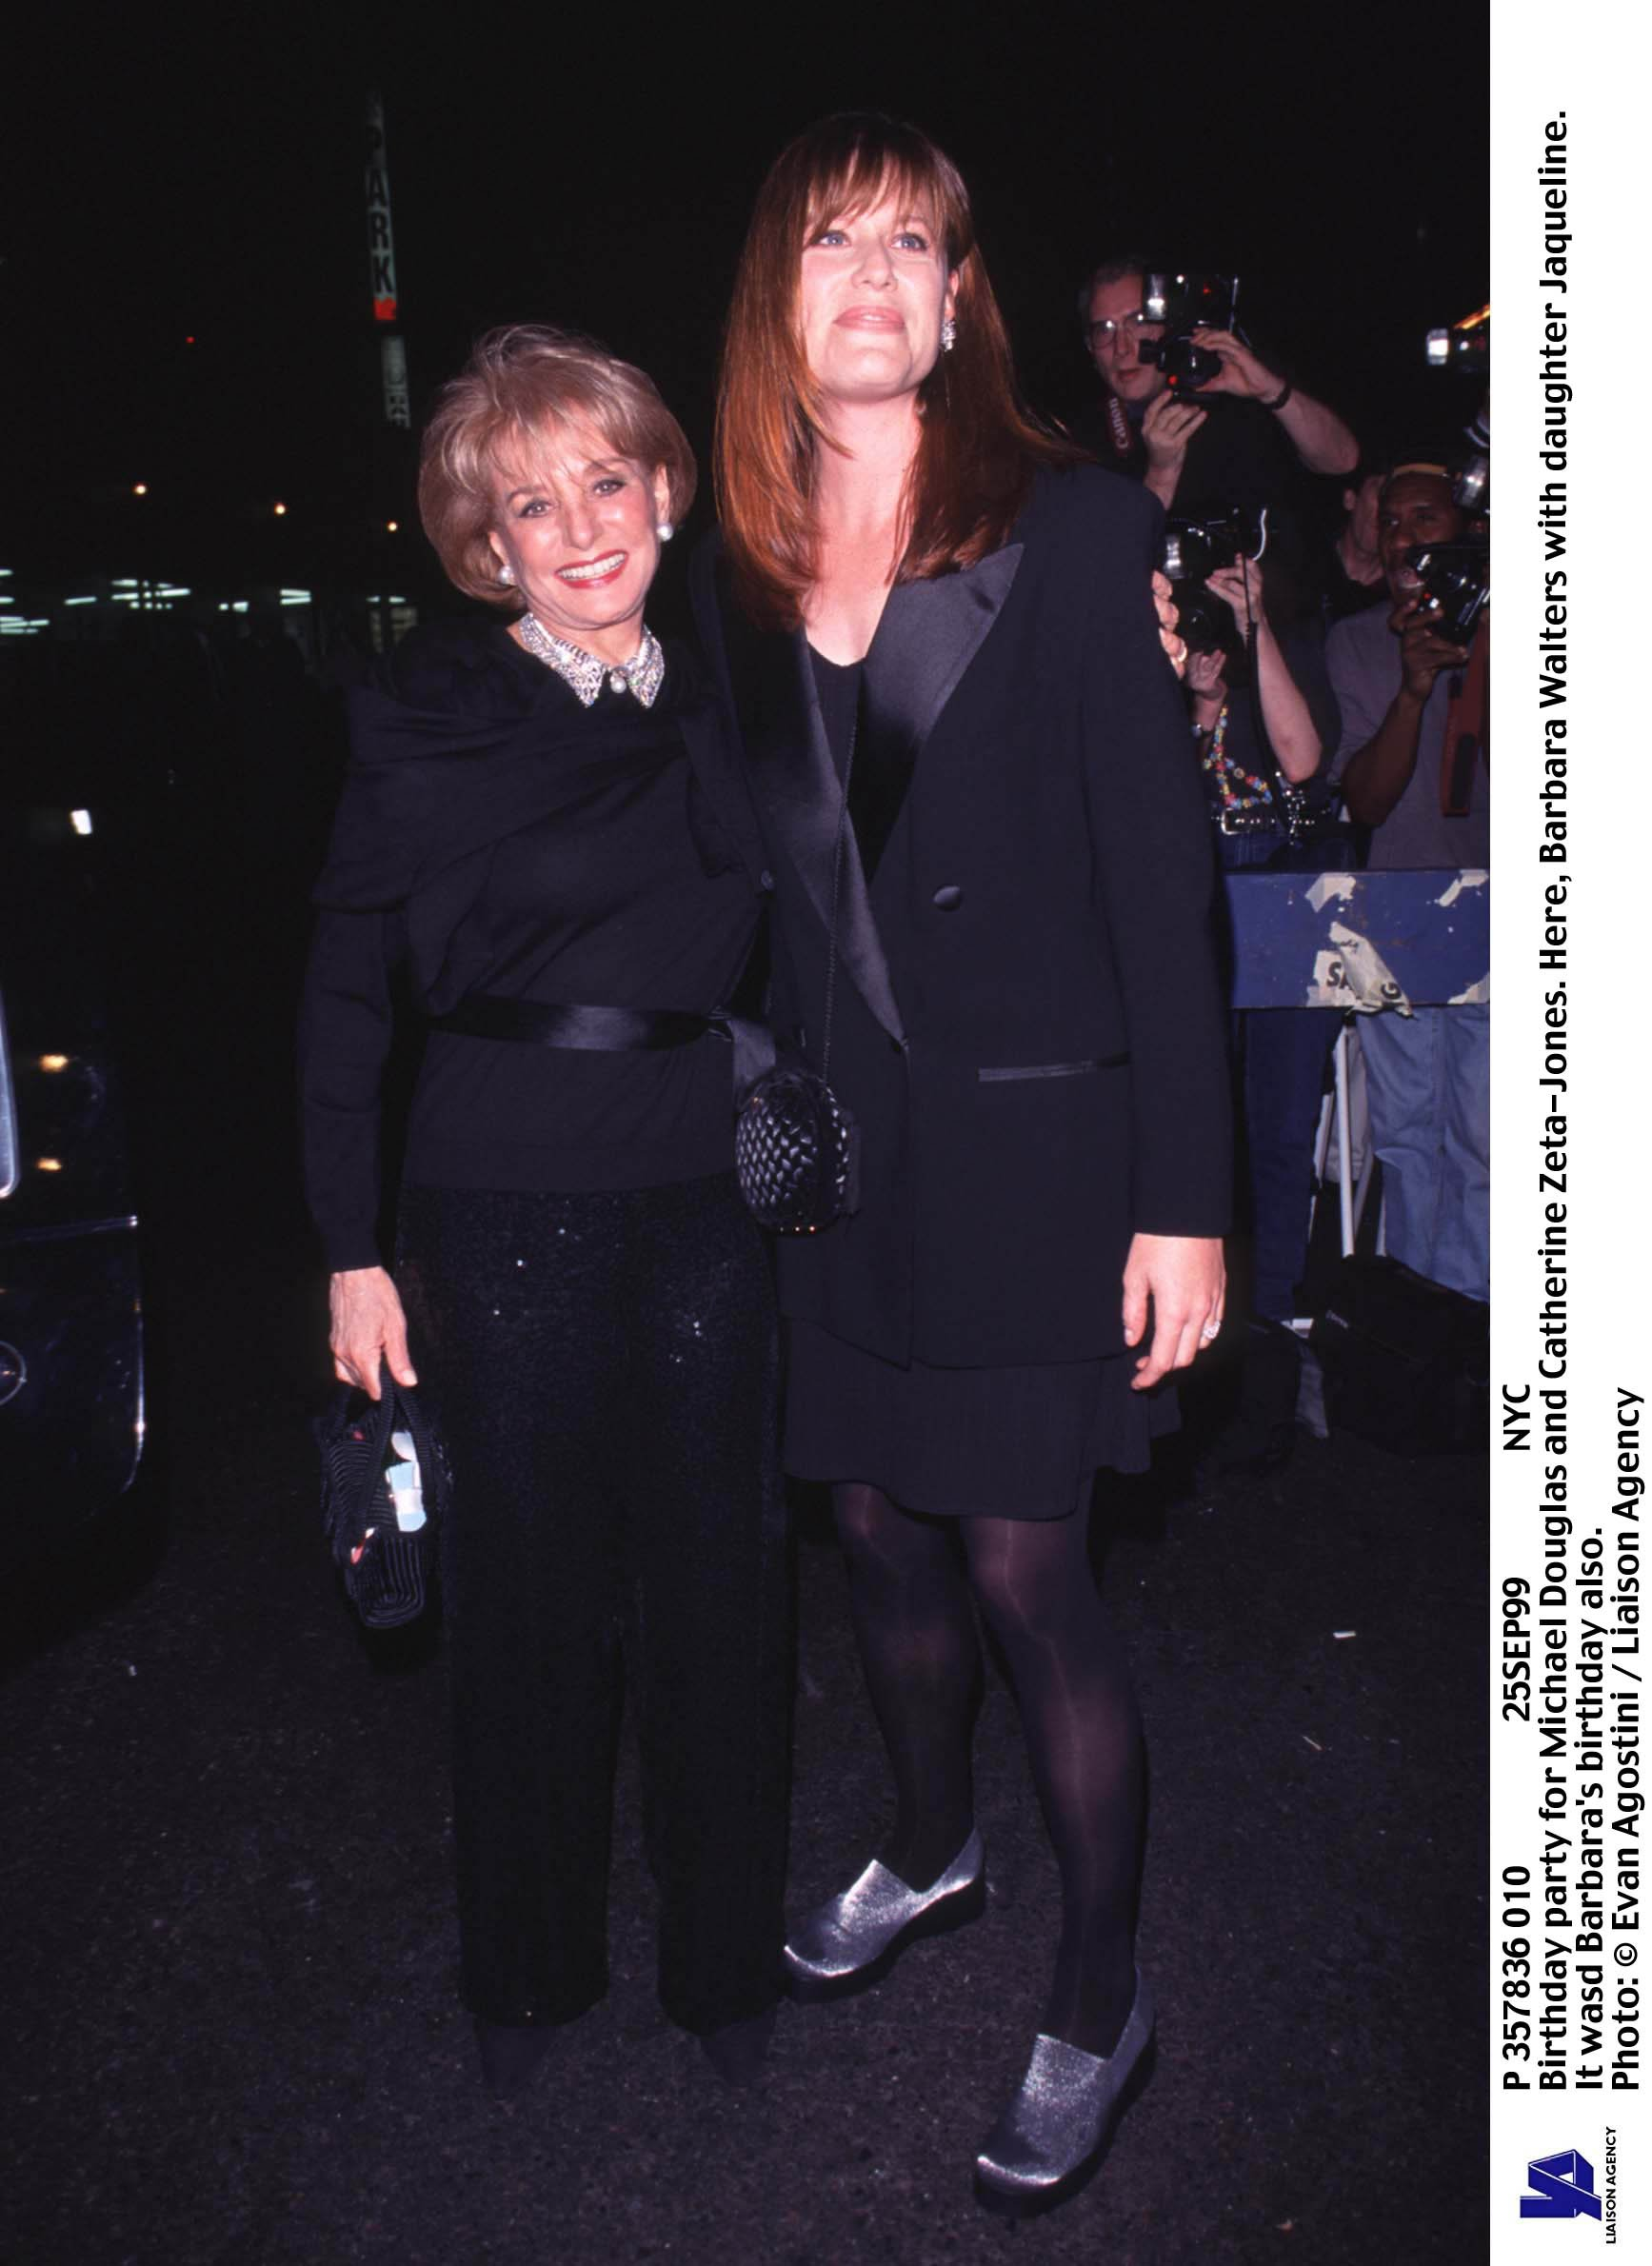 Barbara Walters and daughter Jaqueline at a birthday party for Michael Douglas and Catherine Zeta Jones, September 25, 1999 | Photo: GettyImages